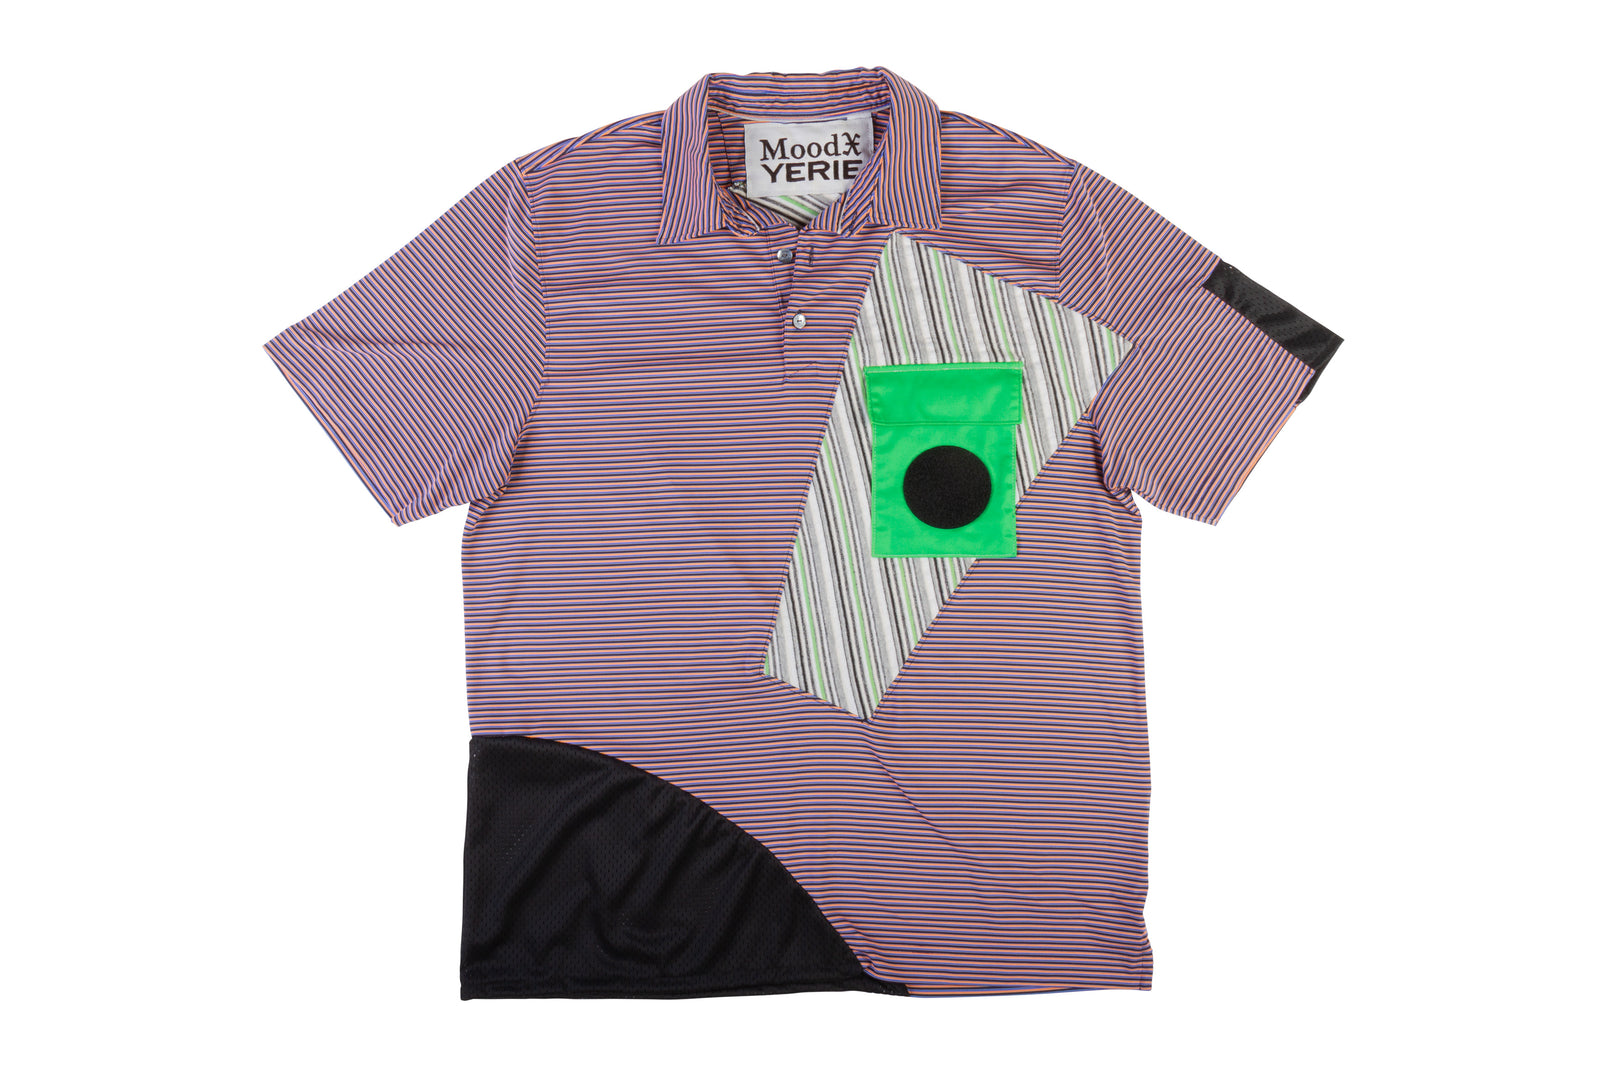 Doug's Golf Shirt, Mood X Yerie